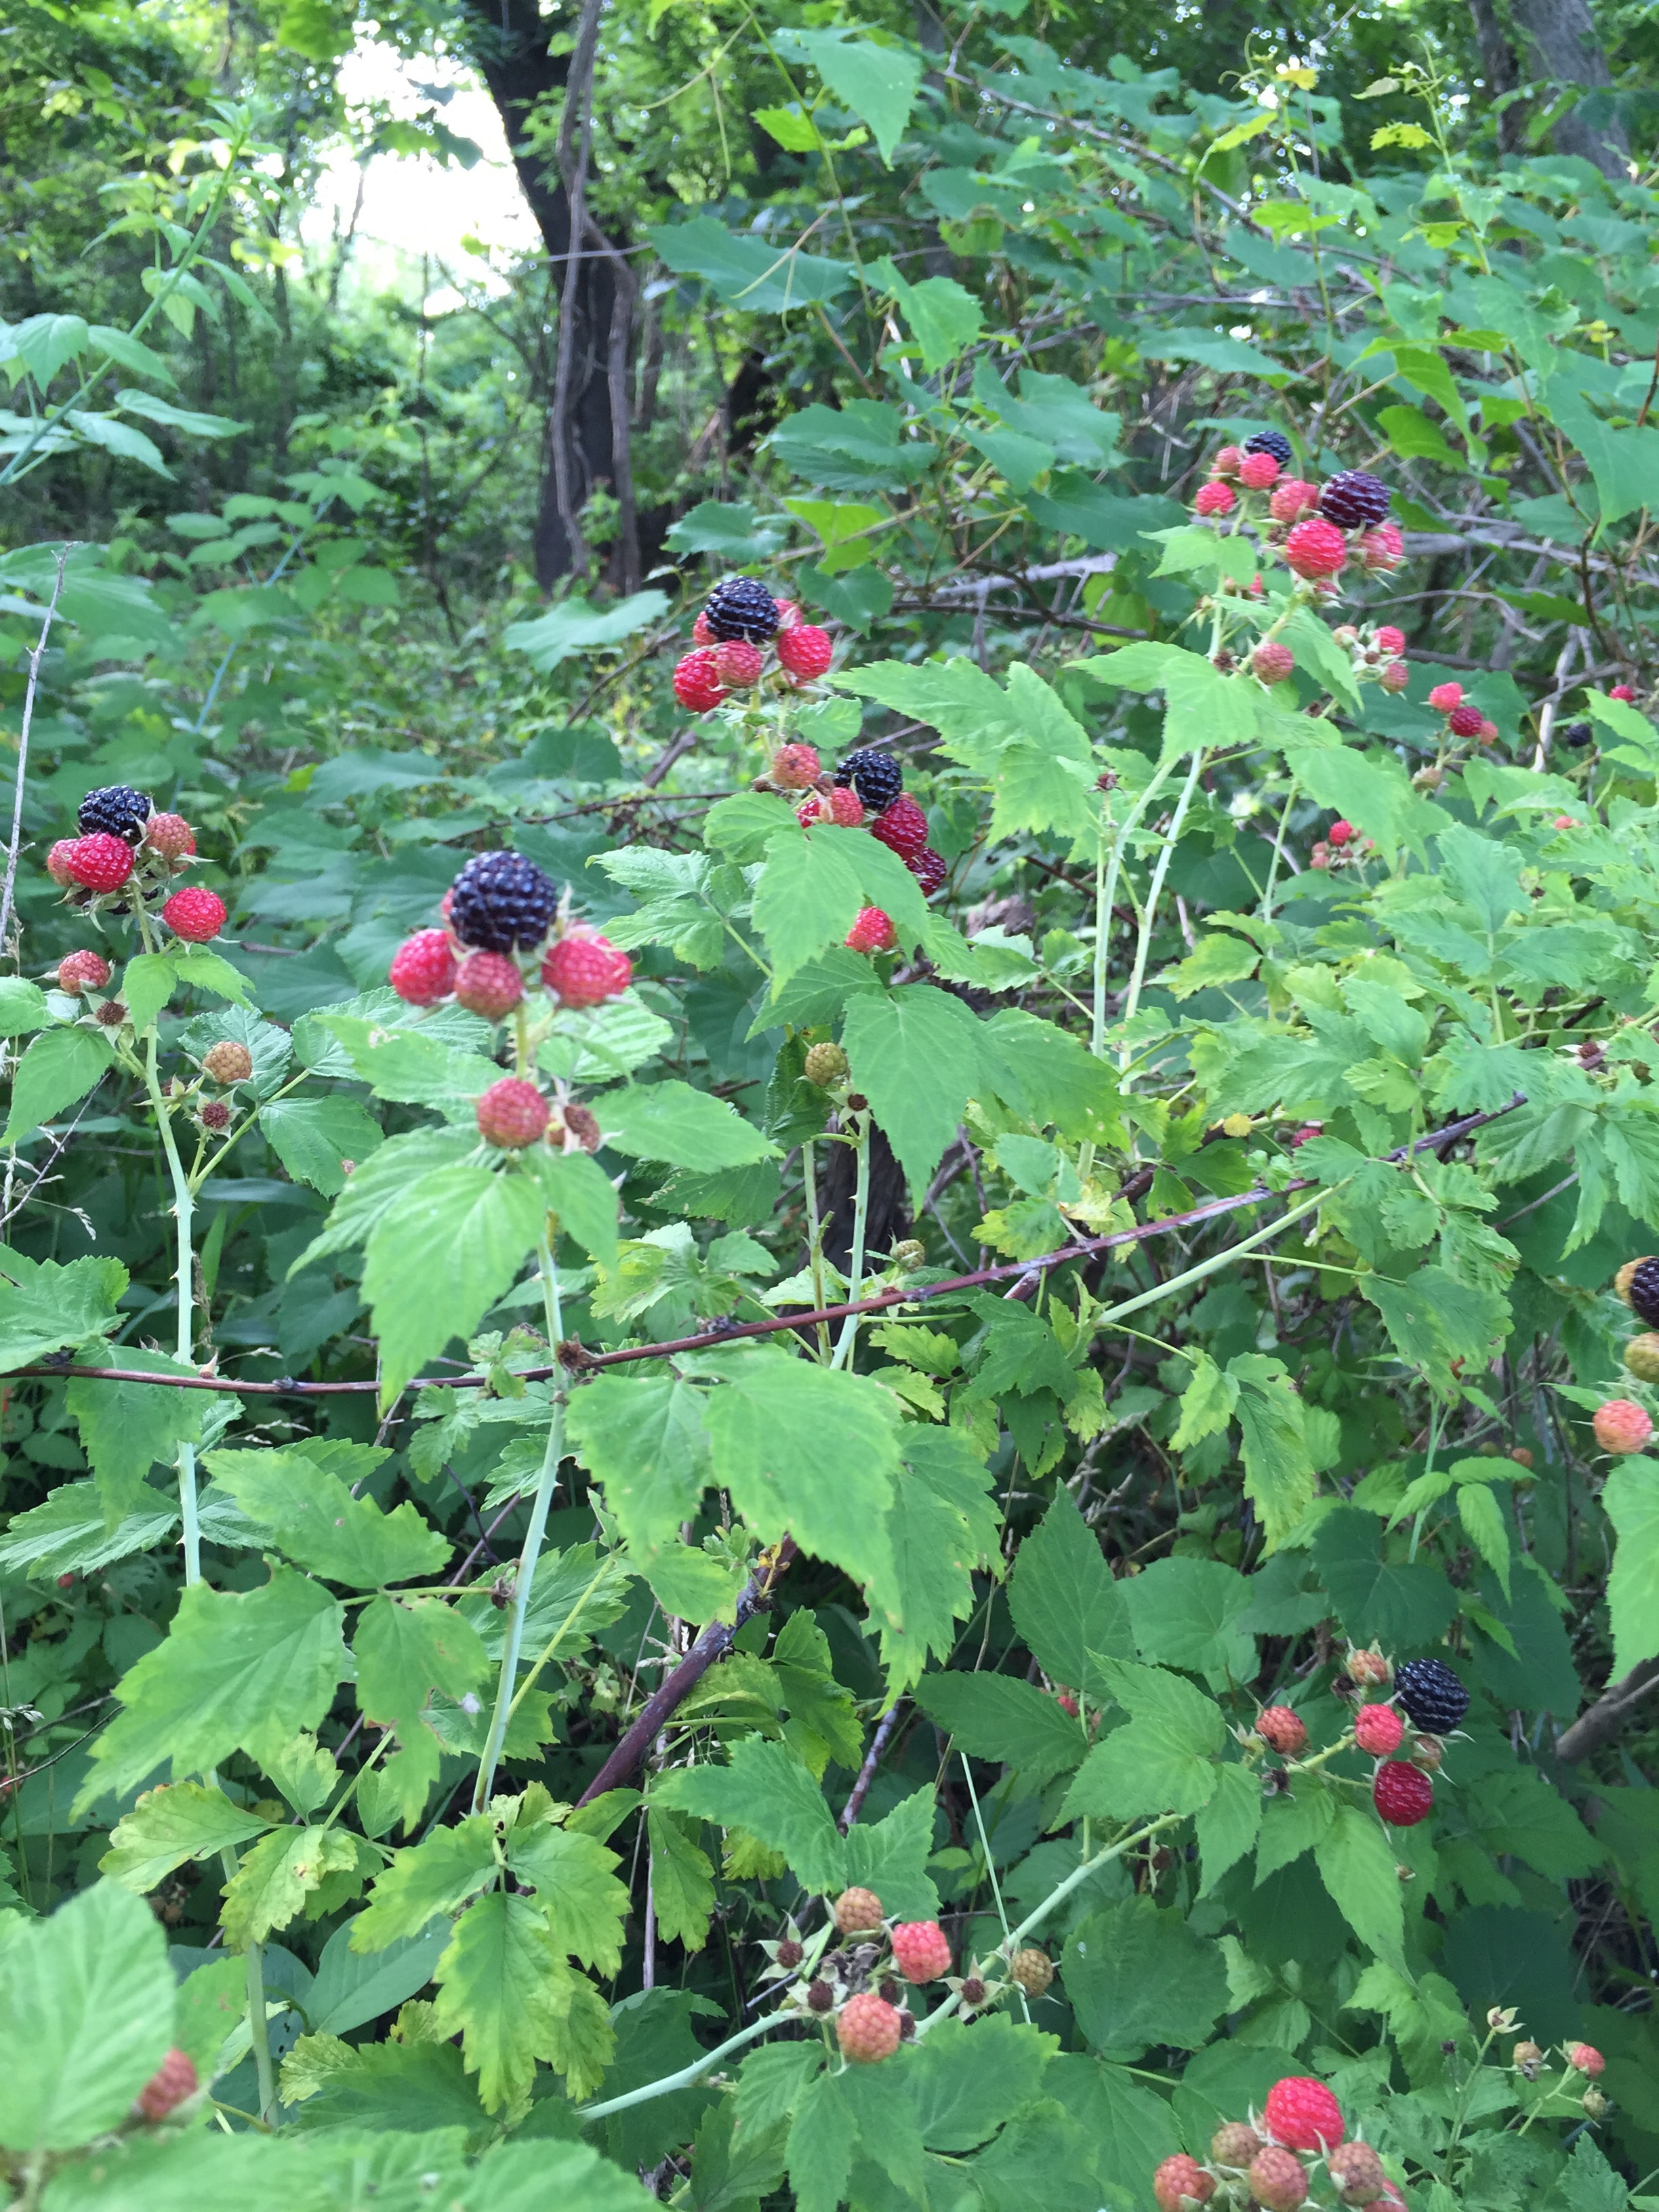 https://200birdies.files.wordpress.com/2015/06/2015-0620-img_0155-wild-black-raspberries.jpg